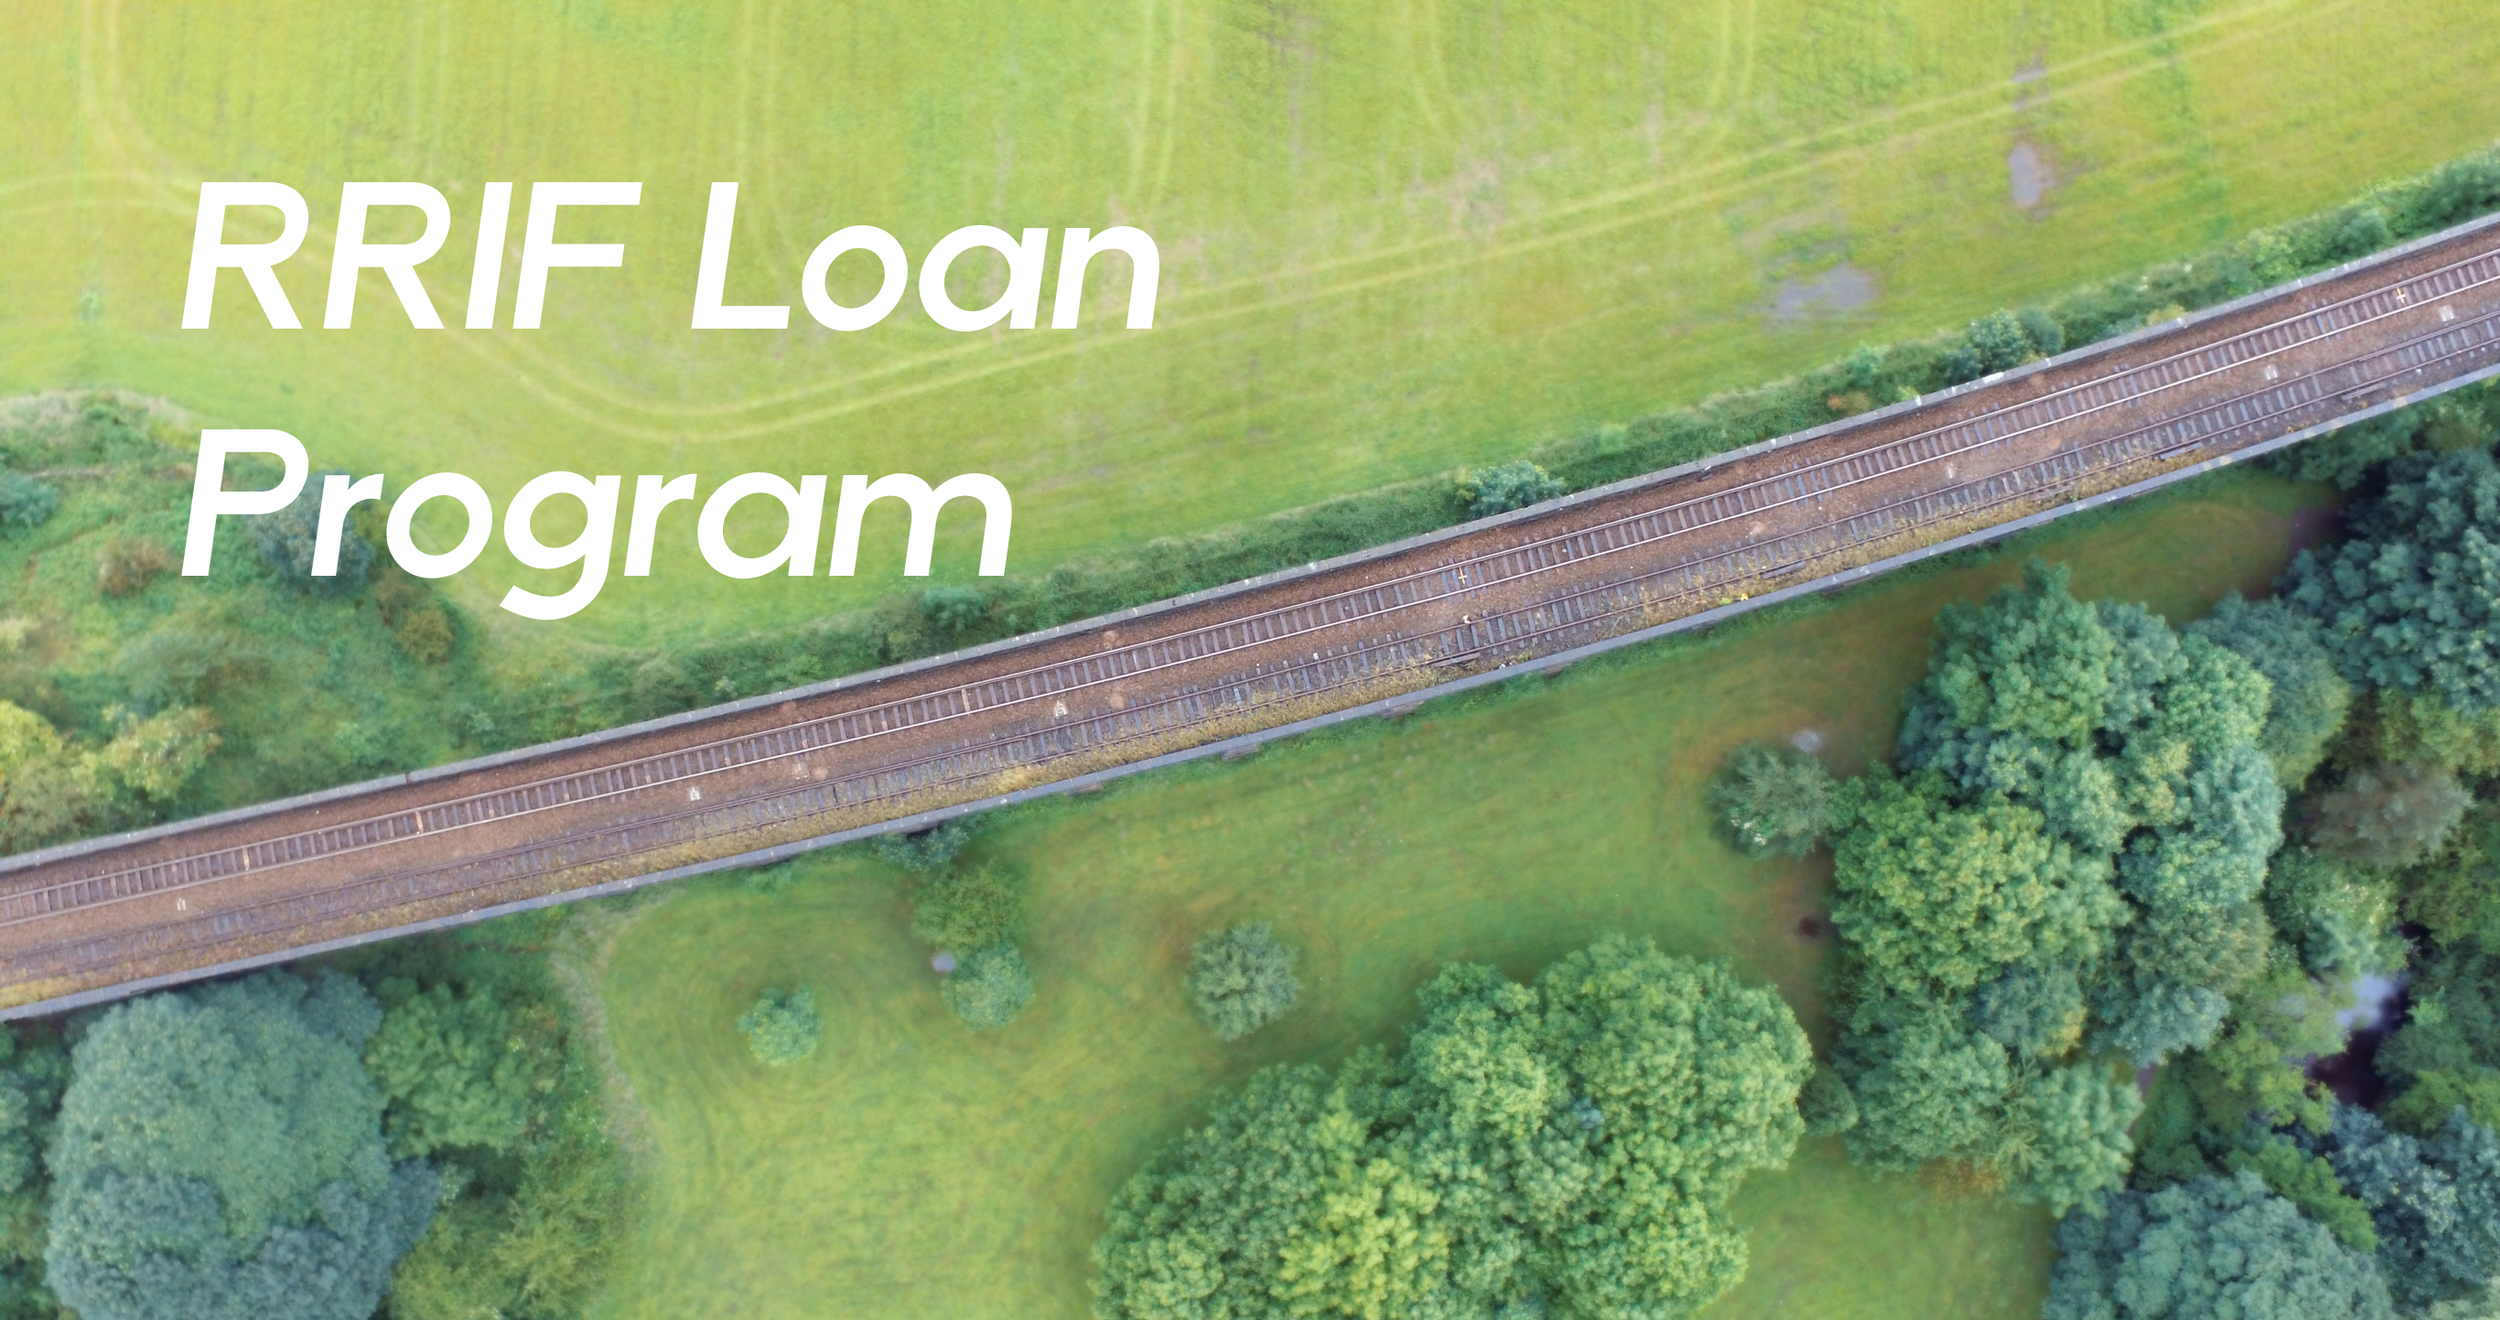 RRIF is a federal loan program for the development and/or improvement of railroad infrastructure -